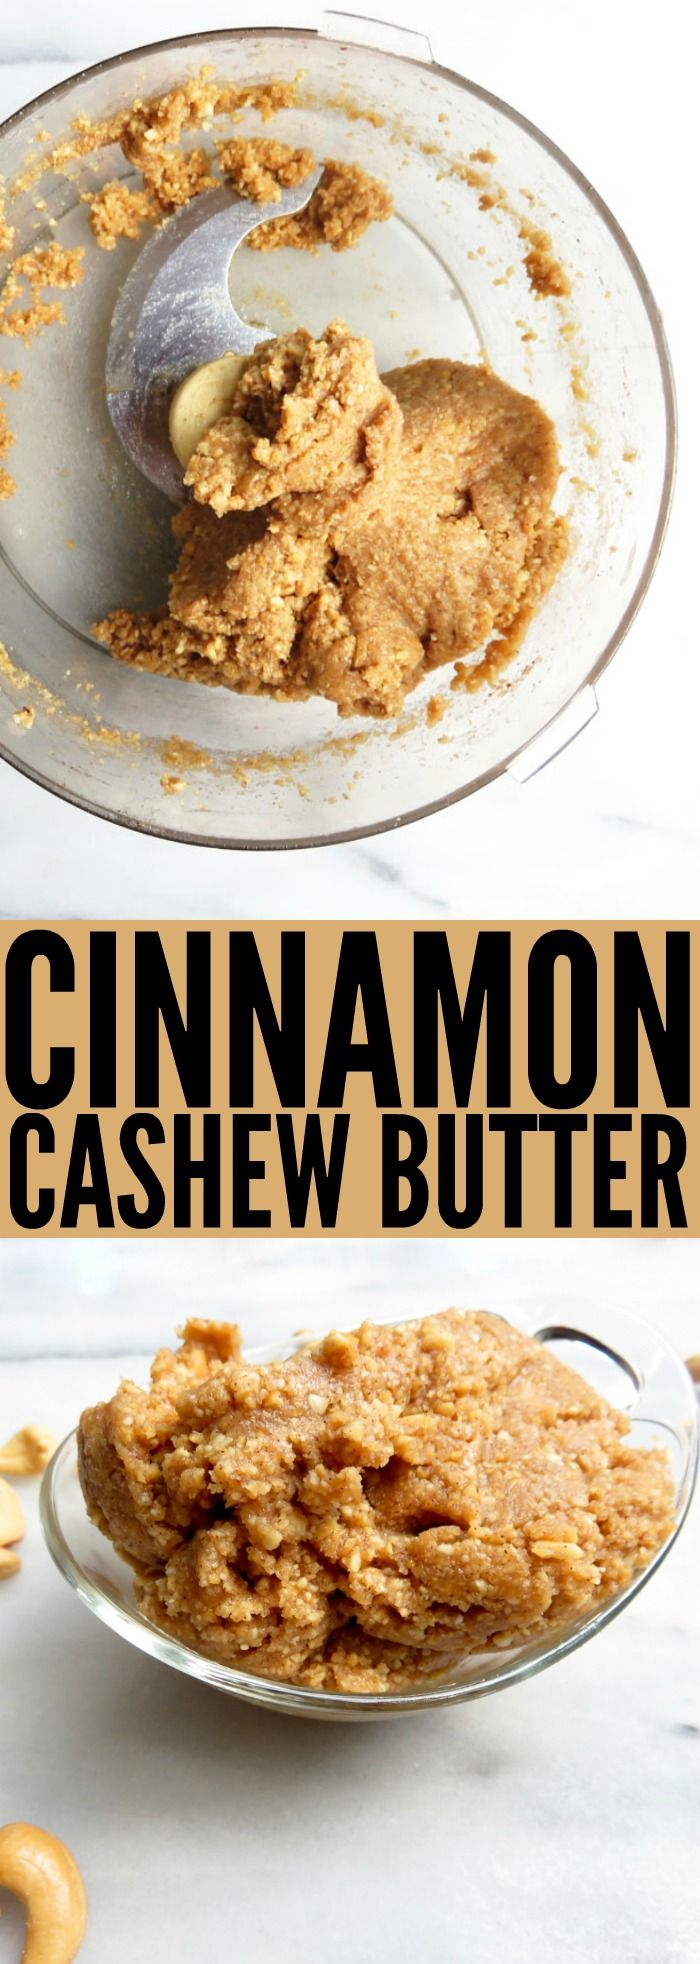 This deliciously chunky and nutty Cinnamon Cashew Butter is perfect for spreading on toast, dipping apples in, or eating straight with a spoon! Enjoy!! thetoastedpinenut.com #nutbutter #cashewbutter #dessert #glutenfree #vegan